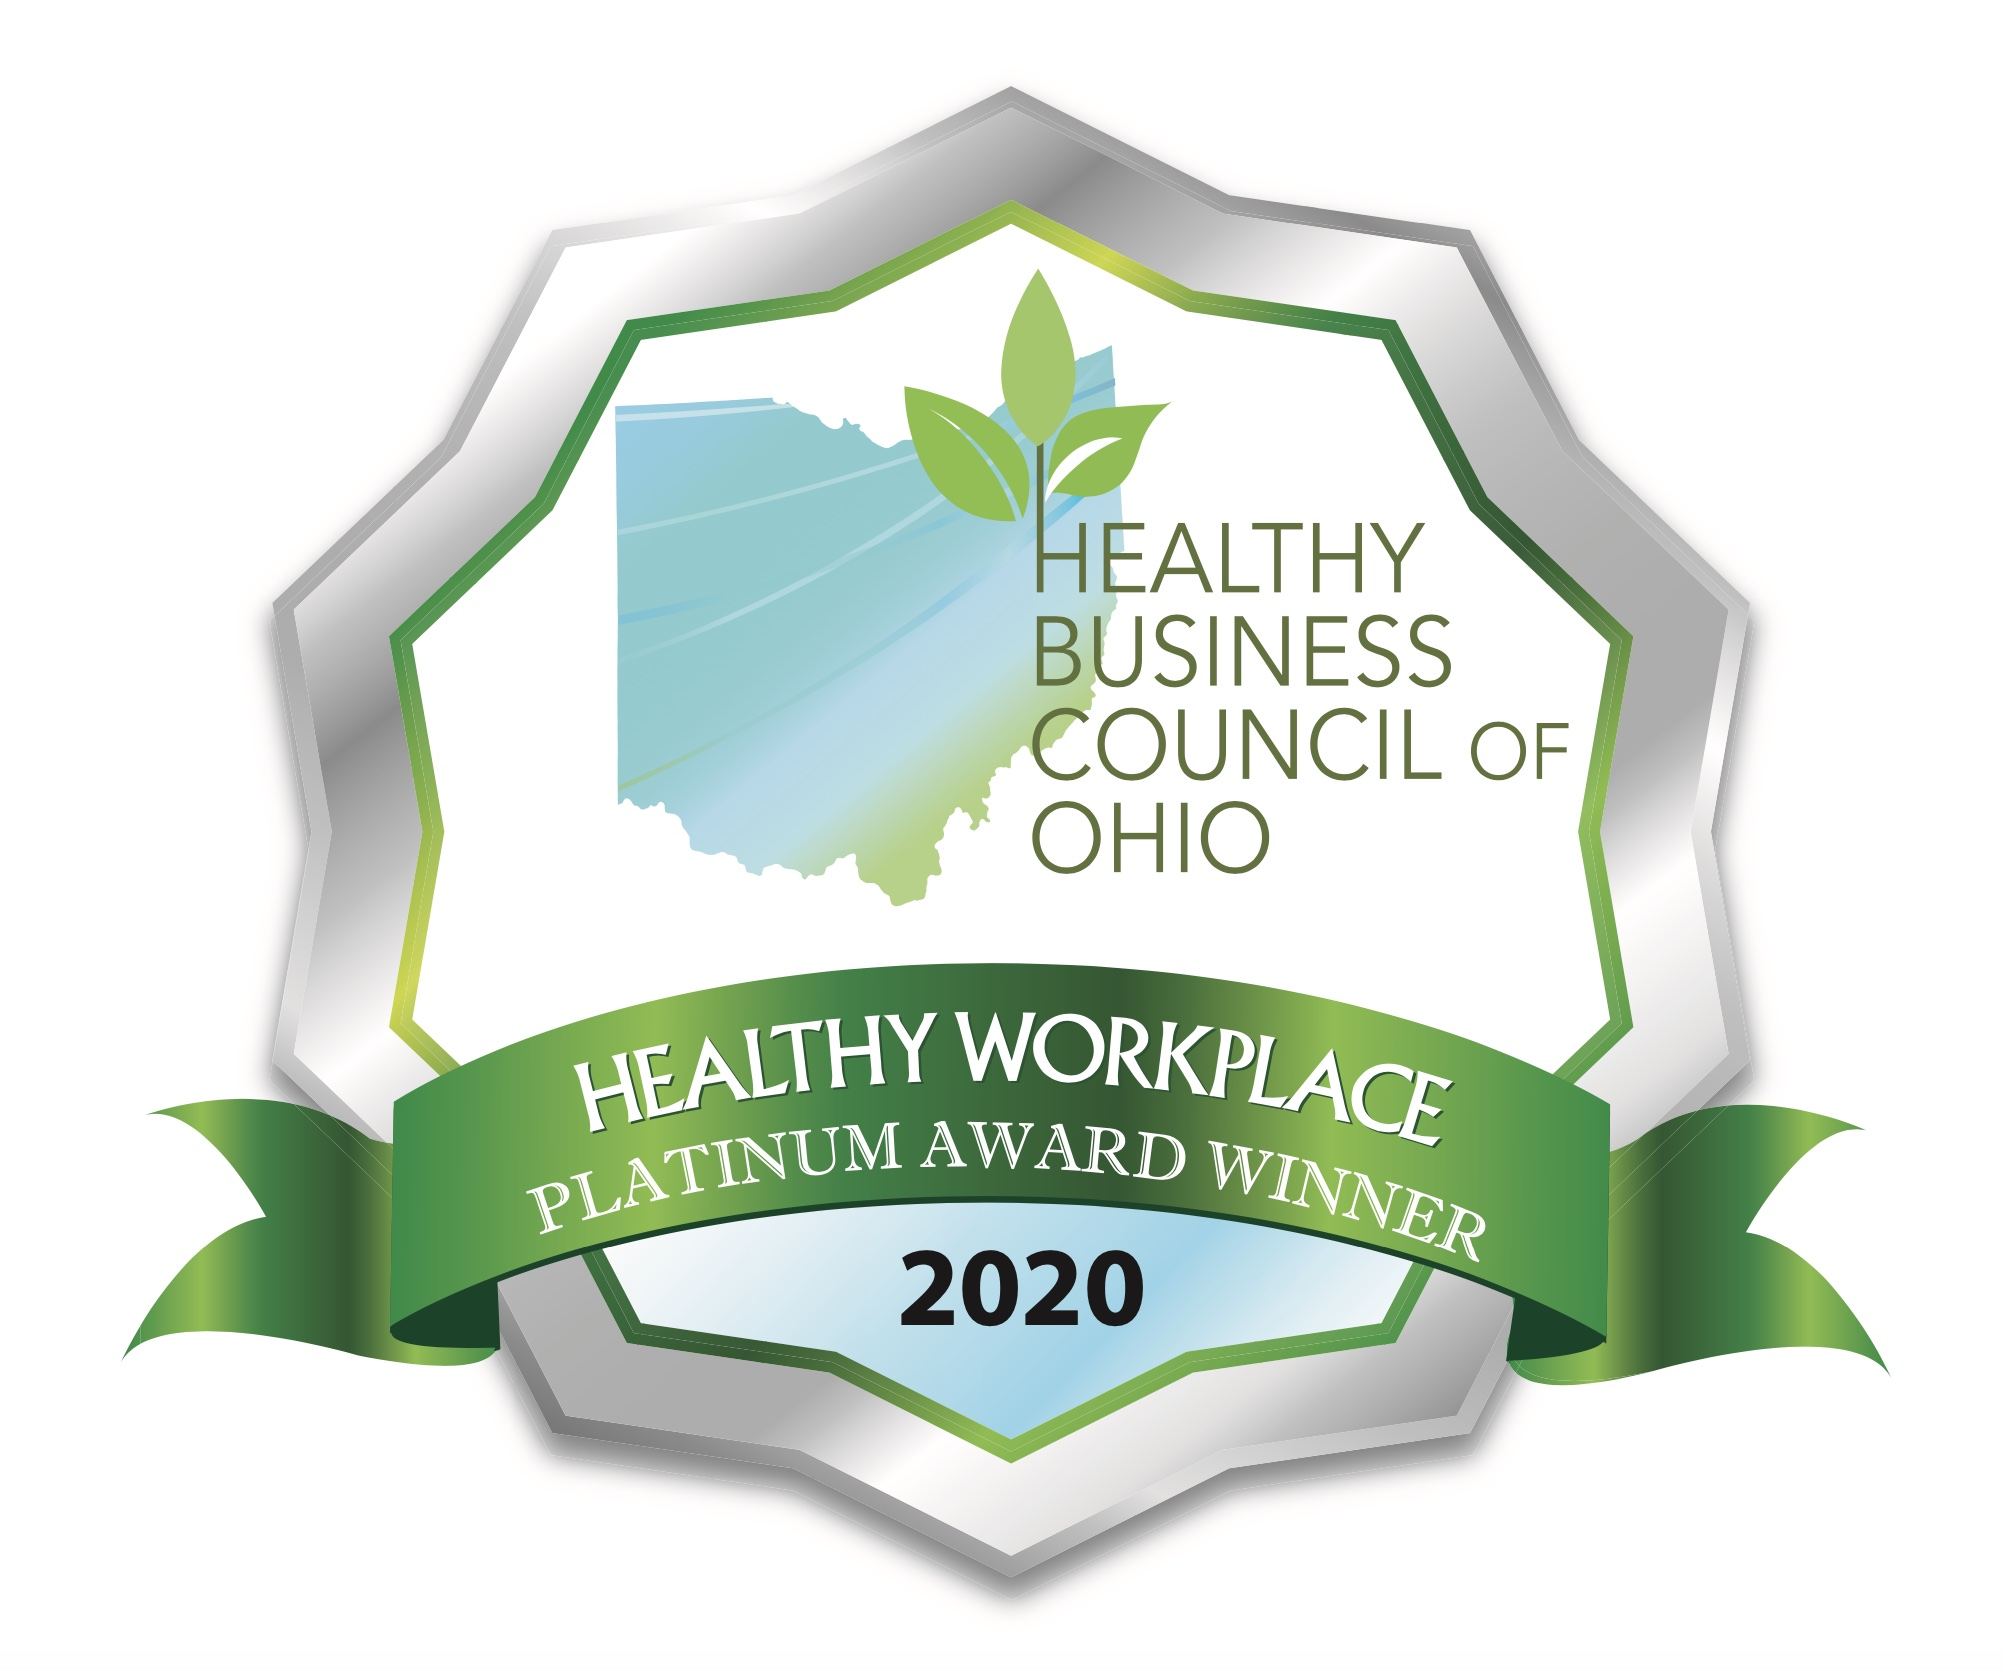 LIFECARE ALLIANCE EARNS 2020 HEALTHY WORKPLACE PLATINUM AWARD